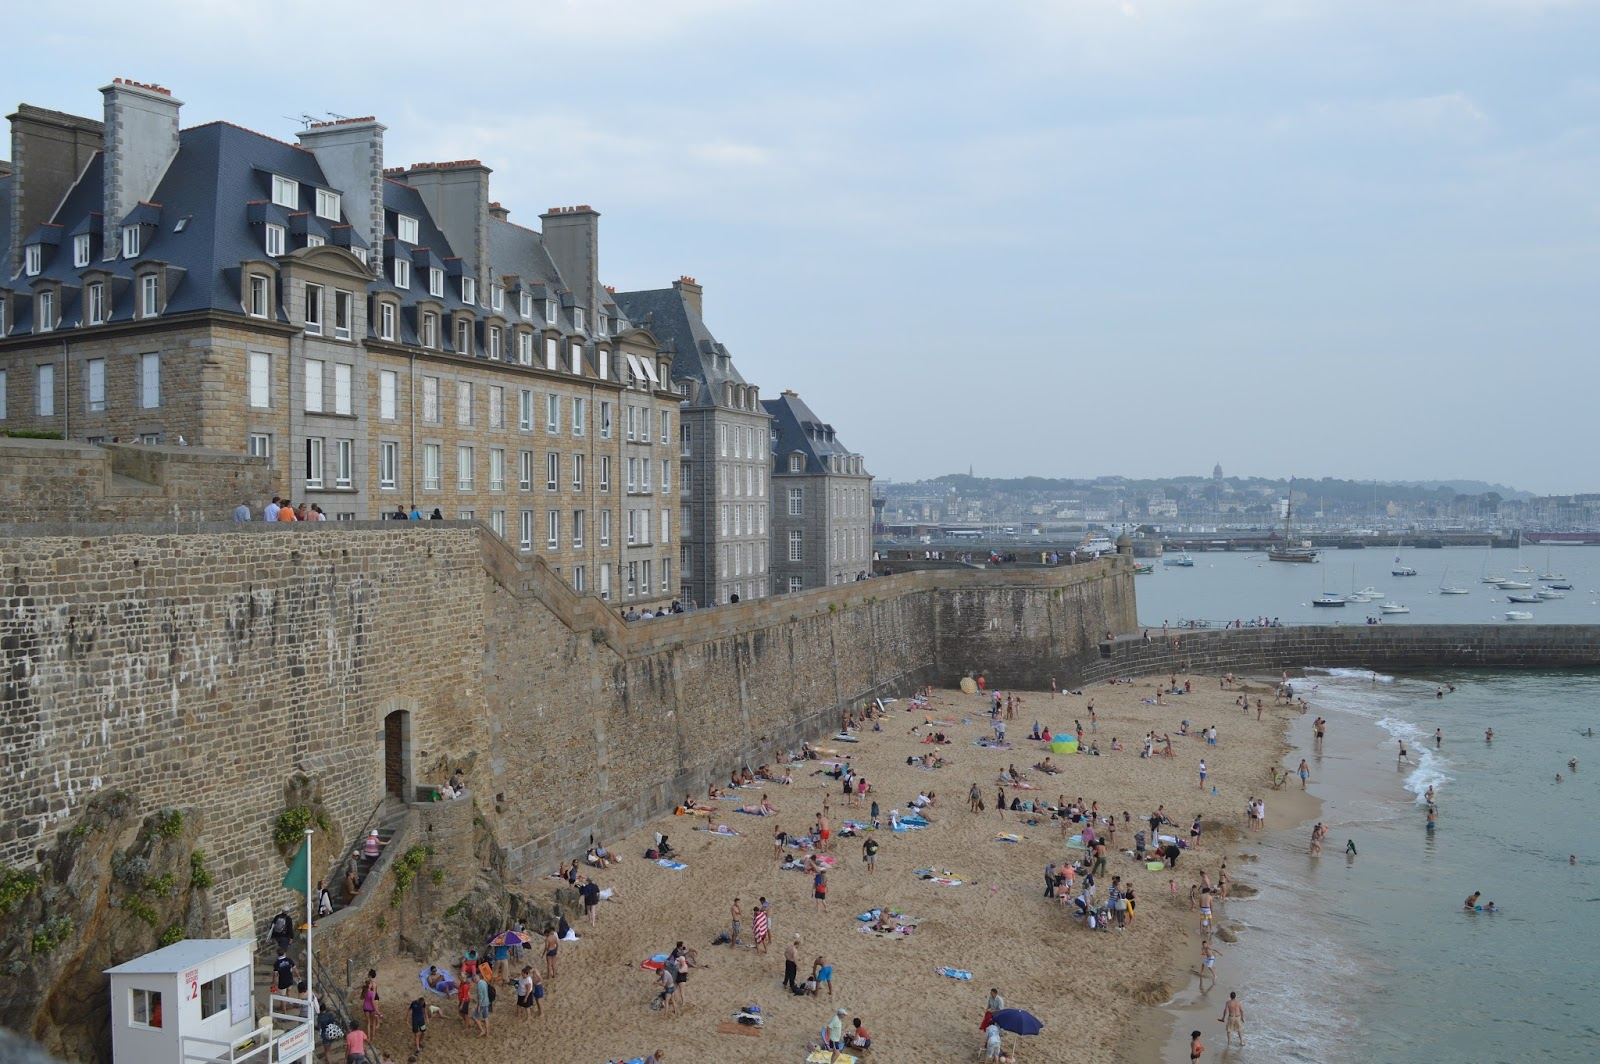 Saint-Malo beach in Brittany